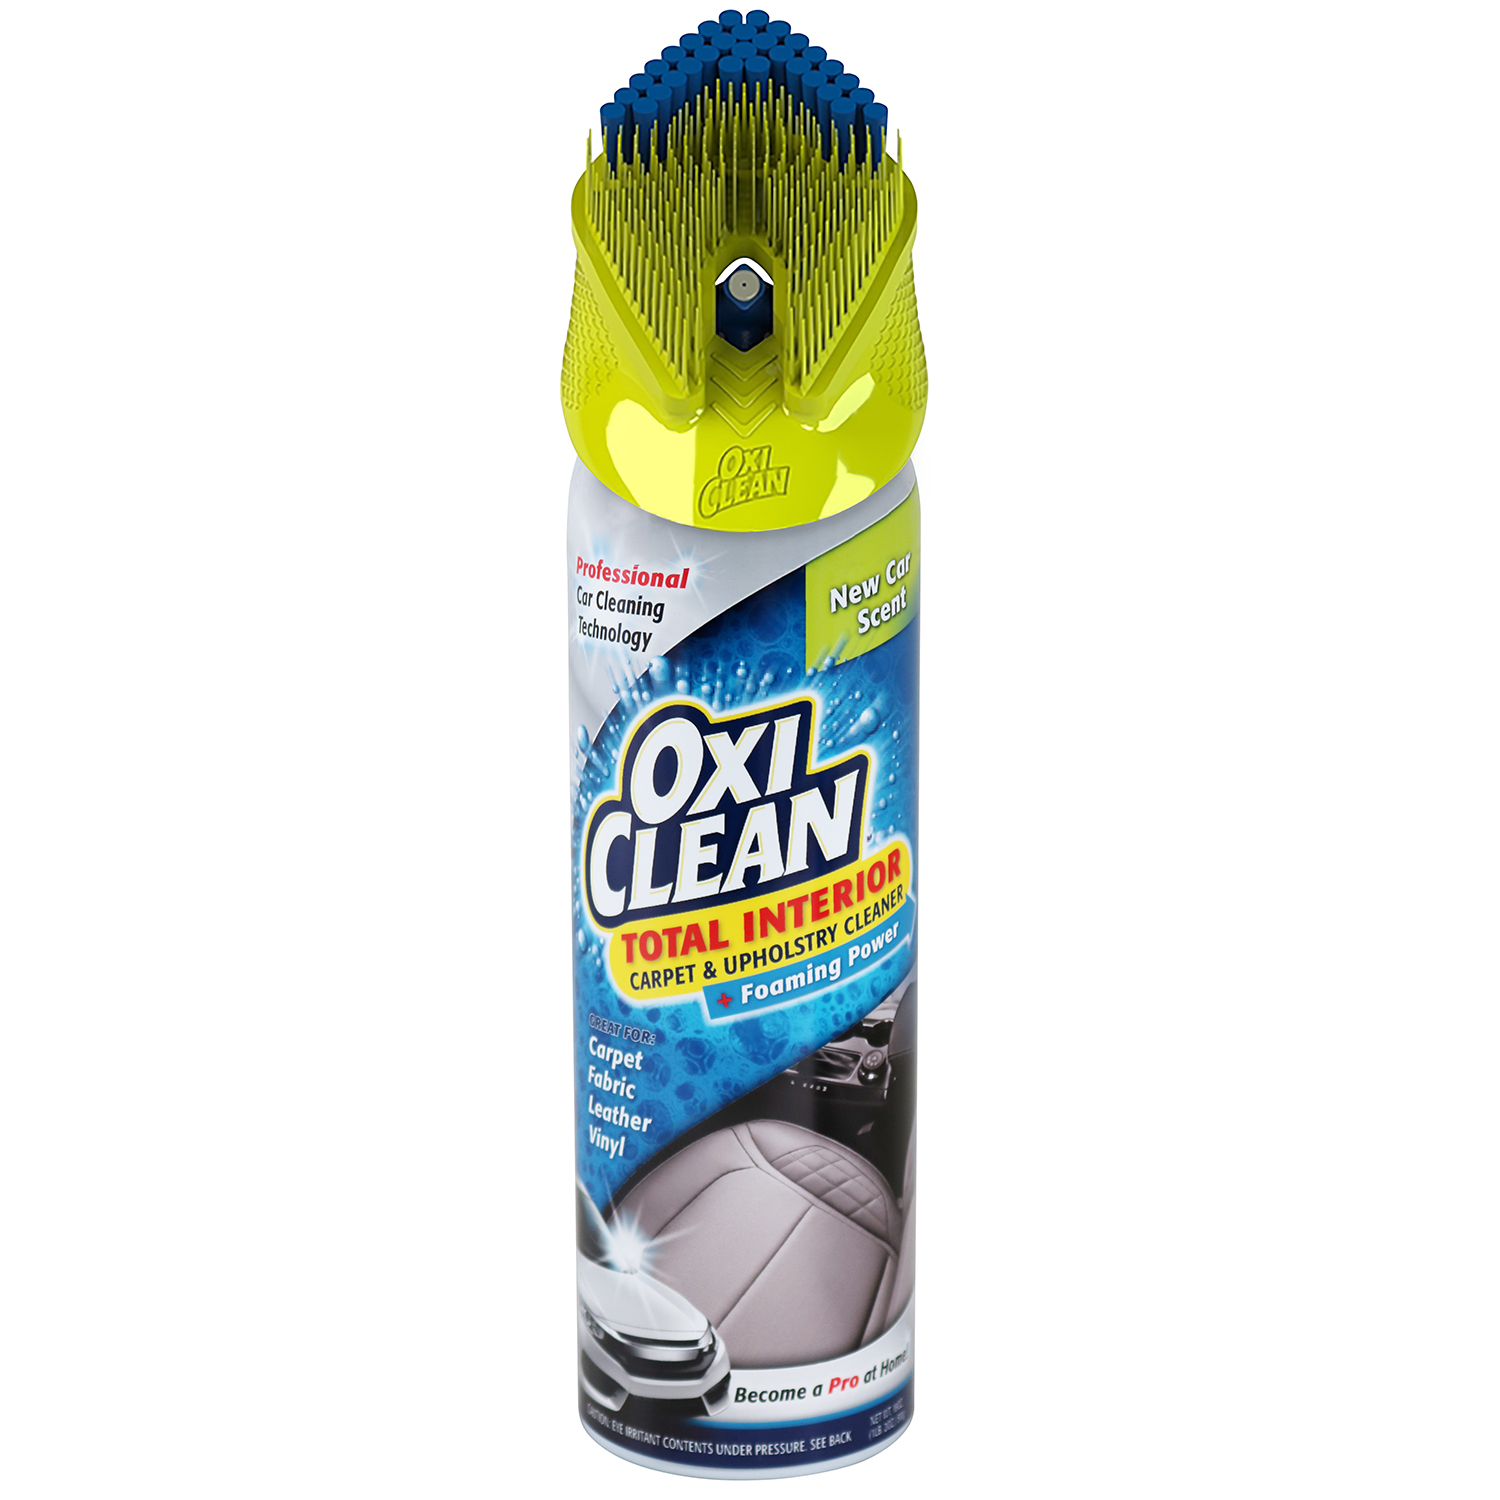 Oxi Clean Total Care Carpet Amp Upholstery Cleaner Walmart Com